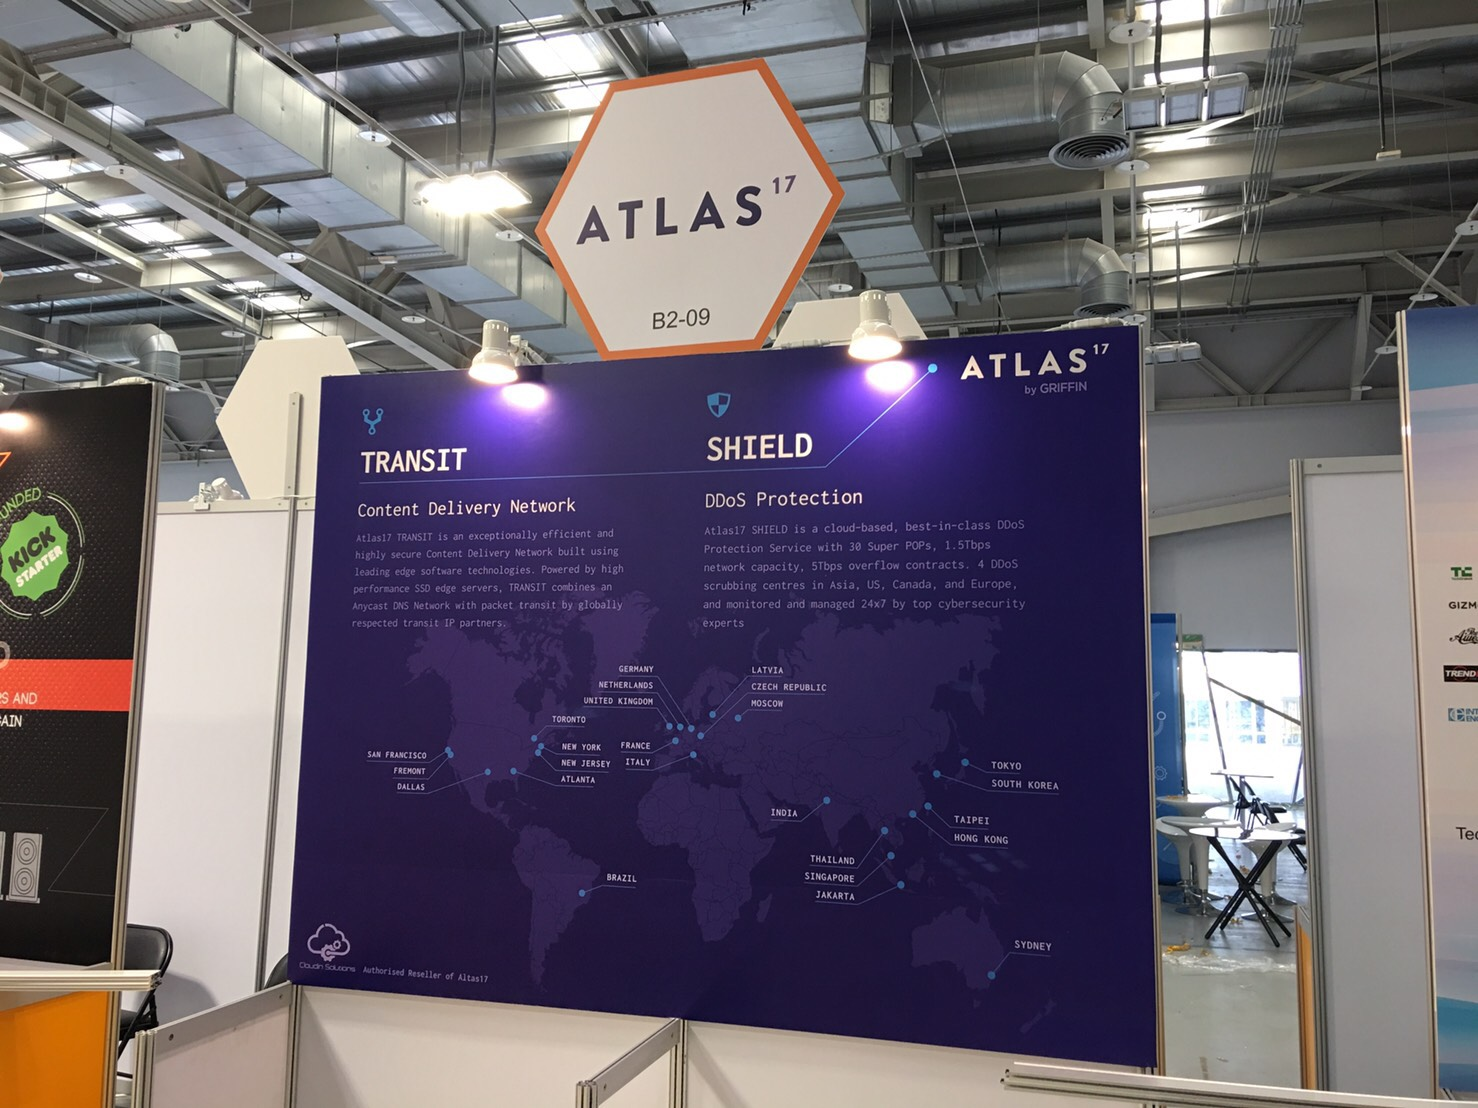 I designed the ATLAS17 poster for the 'Future E-commerce 2017' exhibition which was held in the Taipei Nangang Exhibition Center.